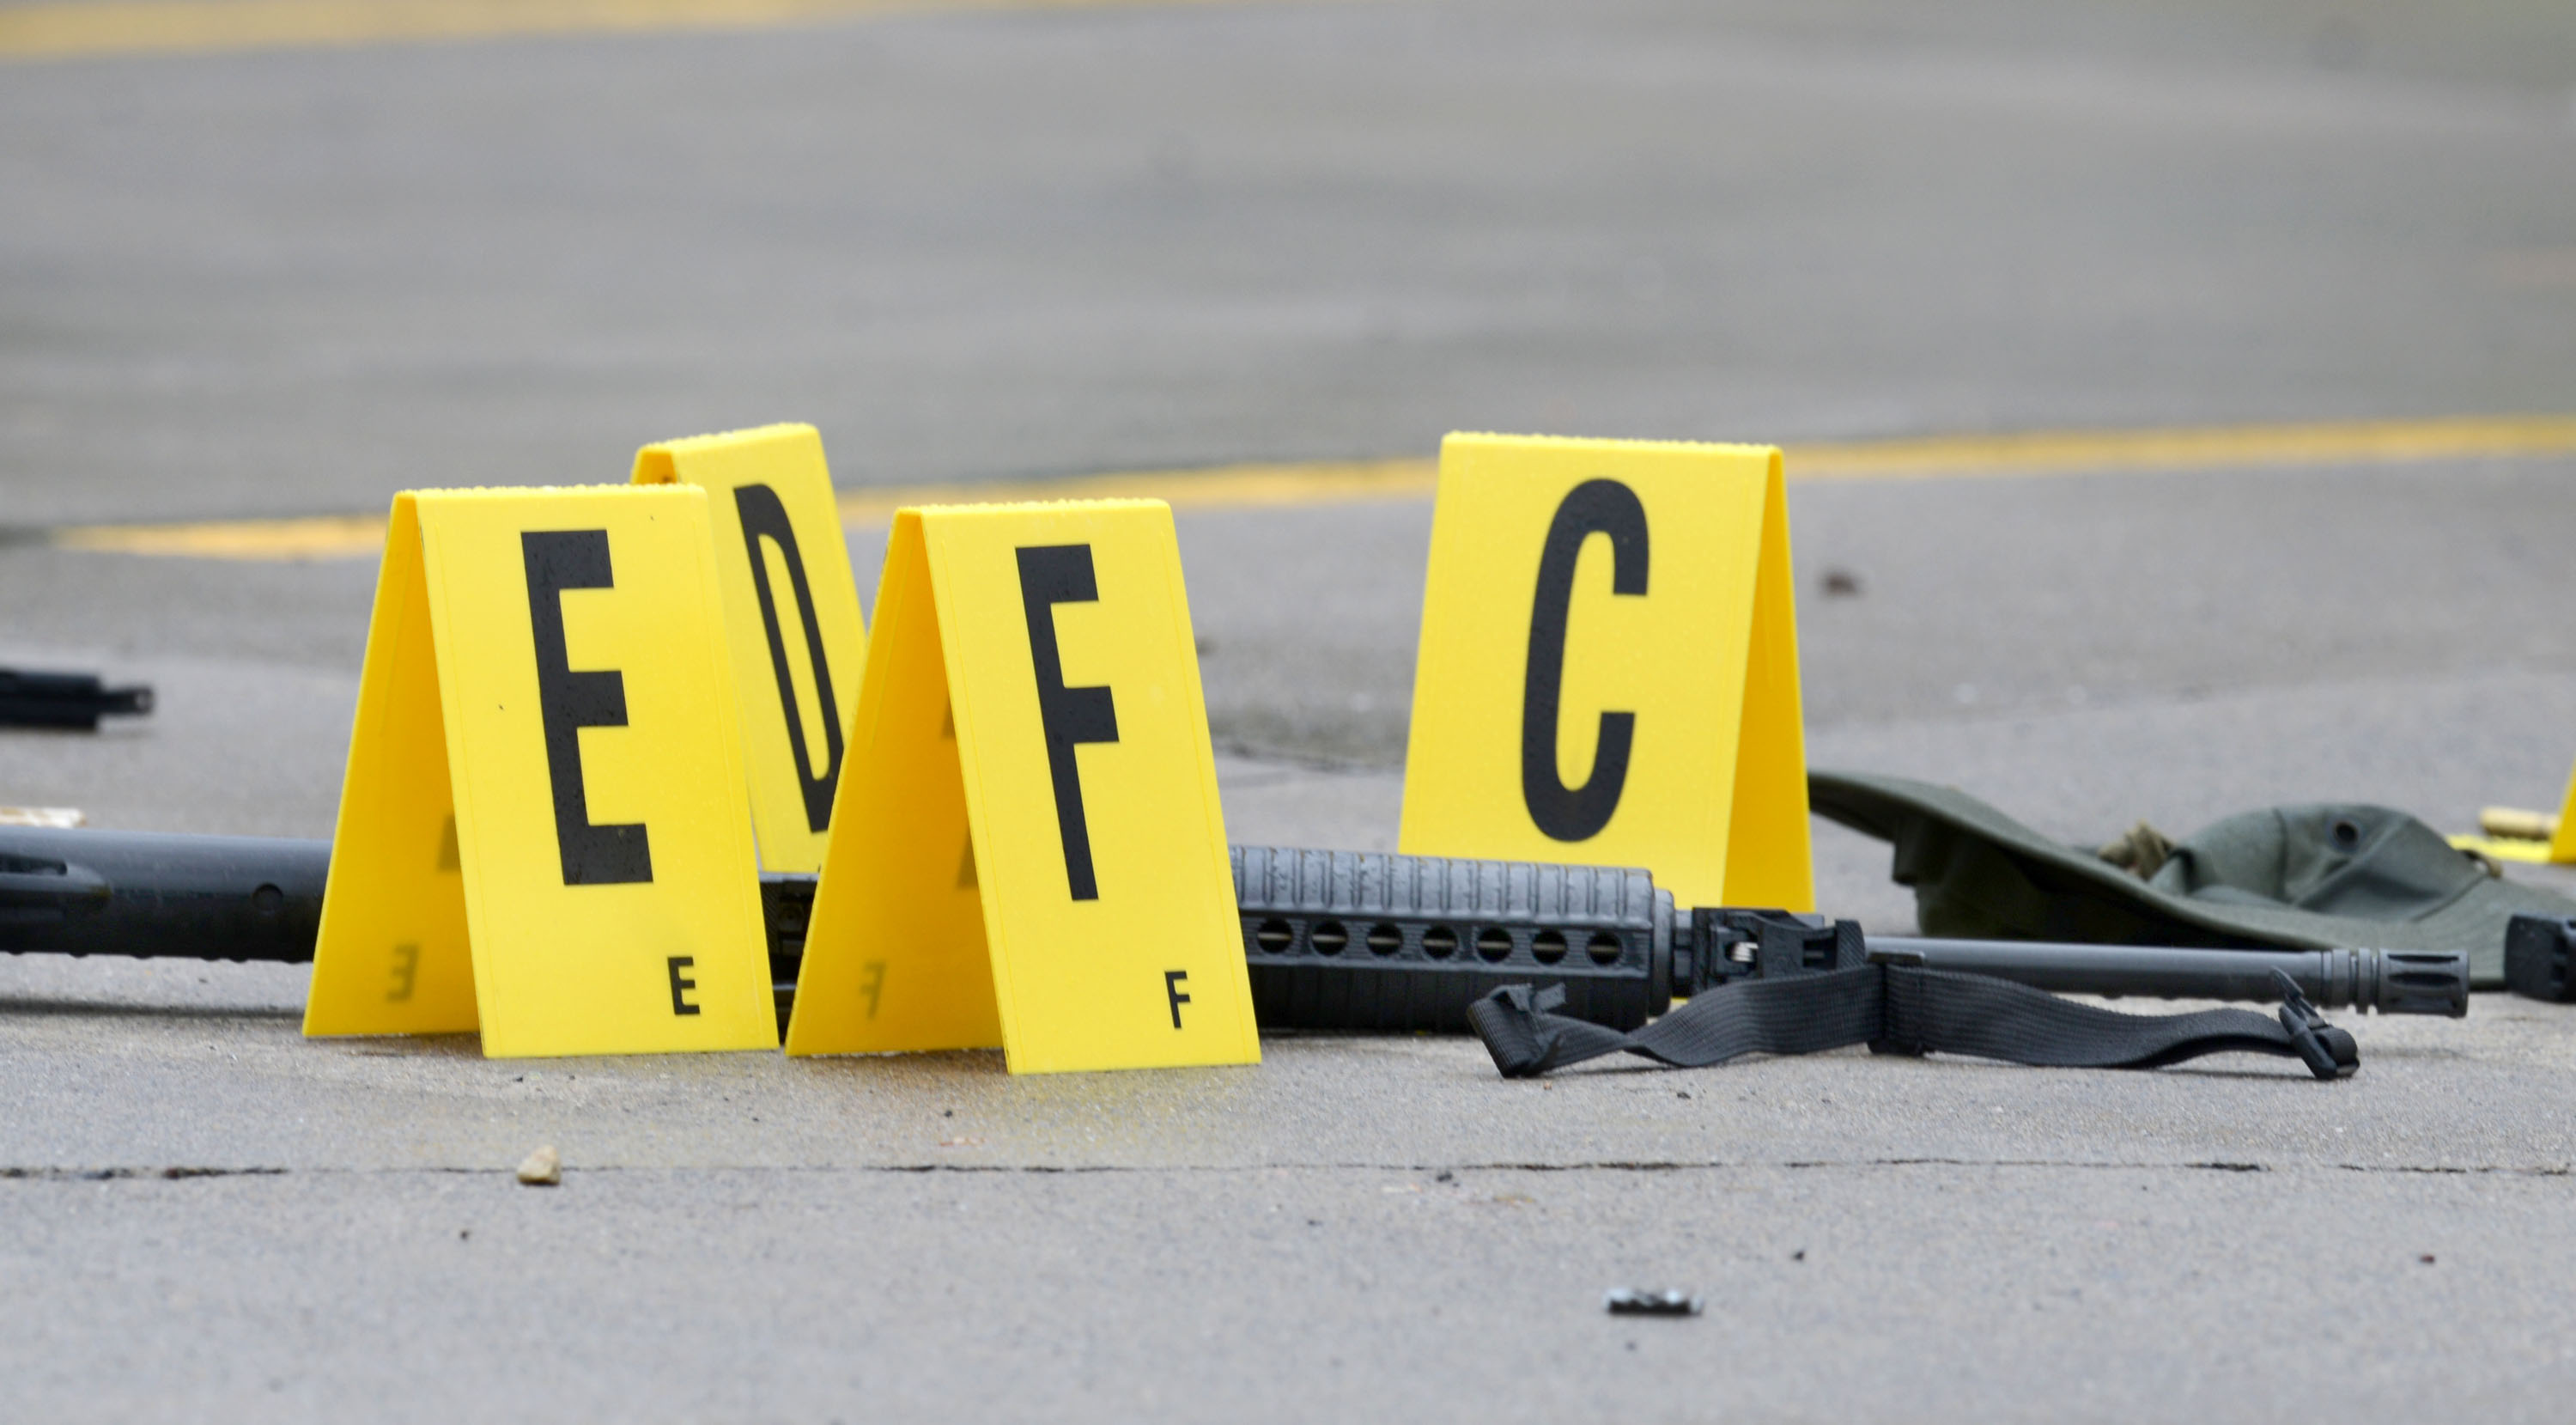 A weapon lays on the ground next to evidence markers in Bristol, Tenn., July 7, 2016.